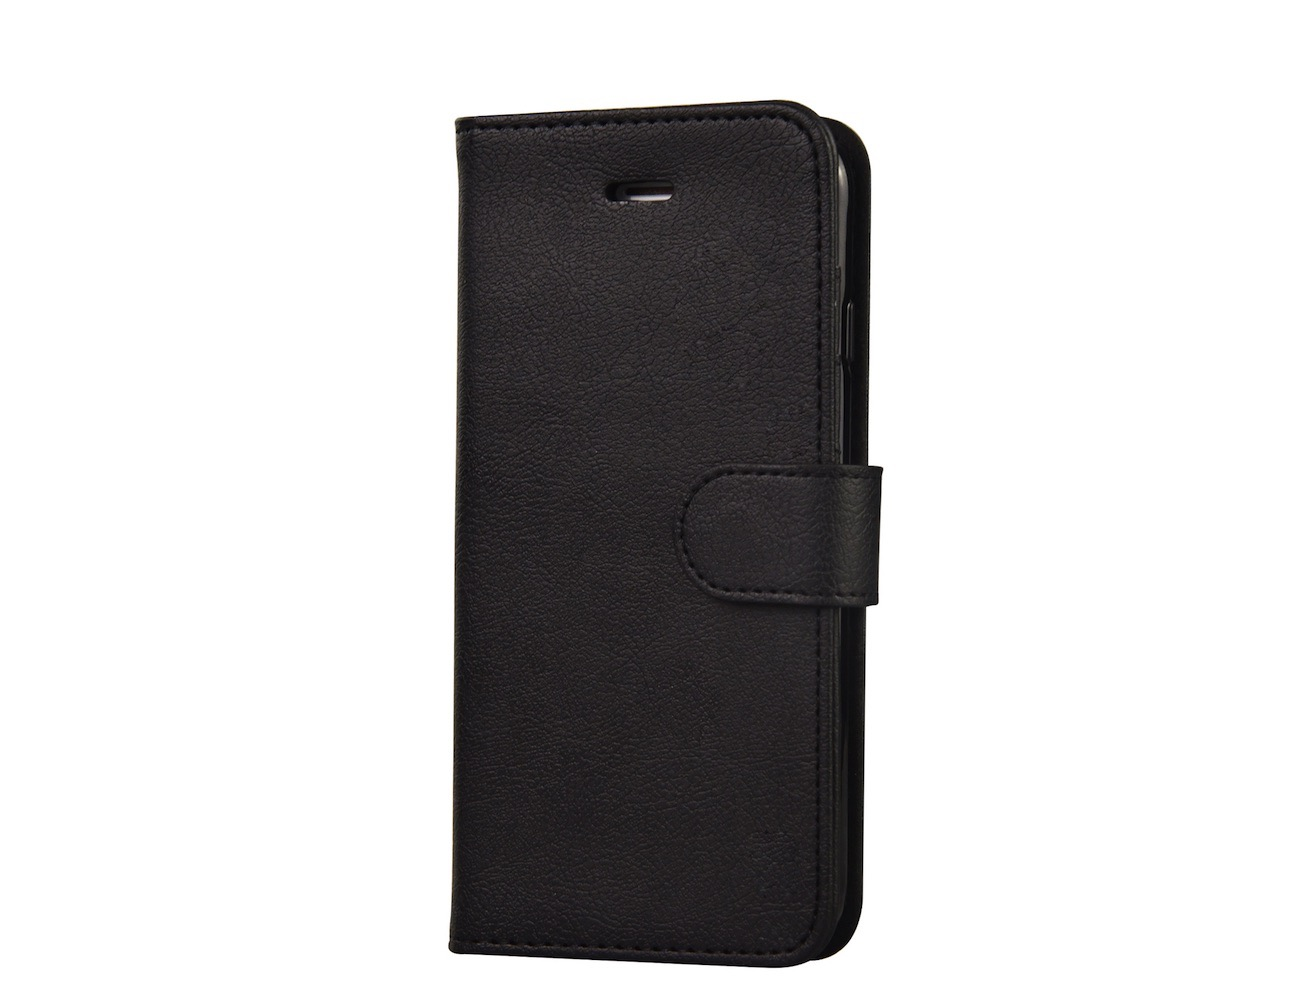 iPhone 6S Wallet Case by Abacus24-7